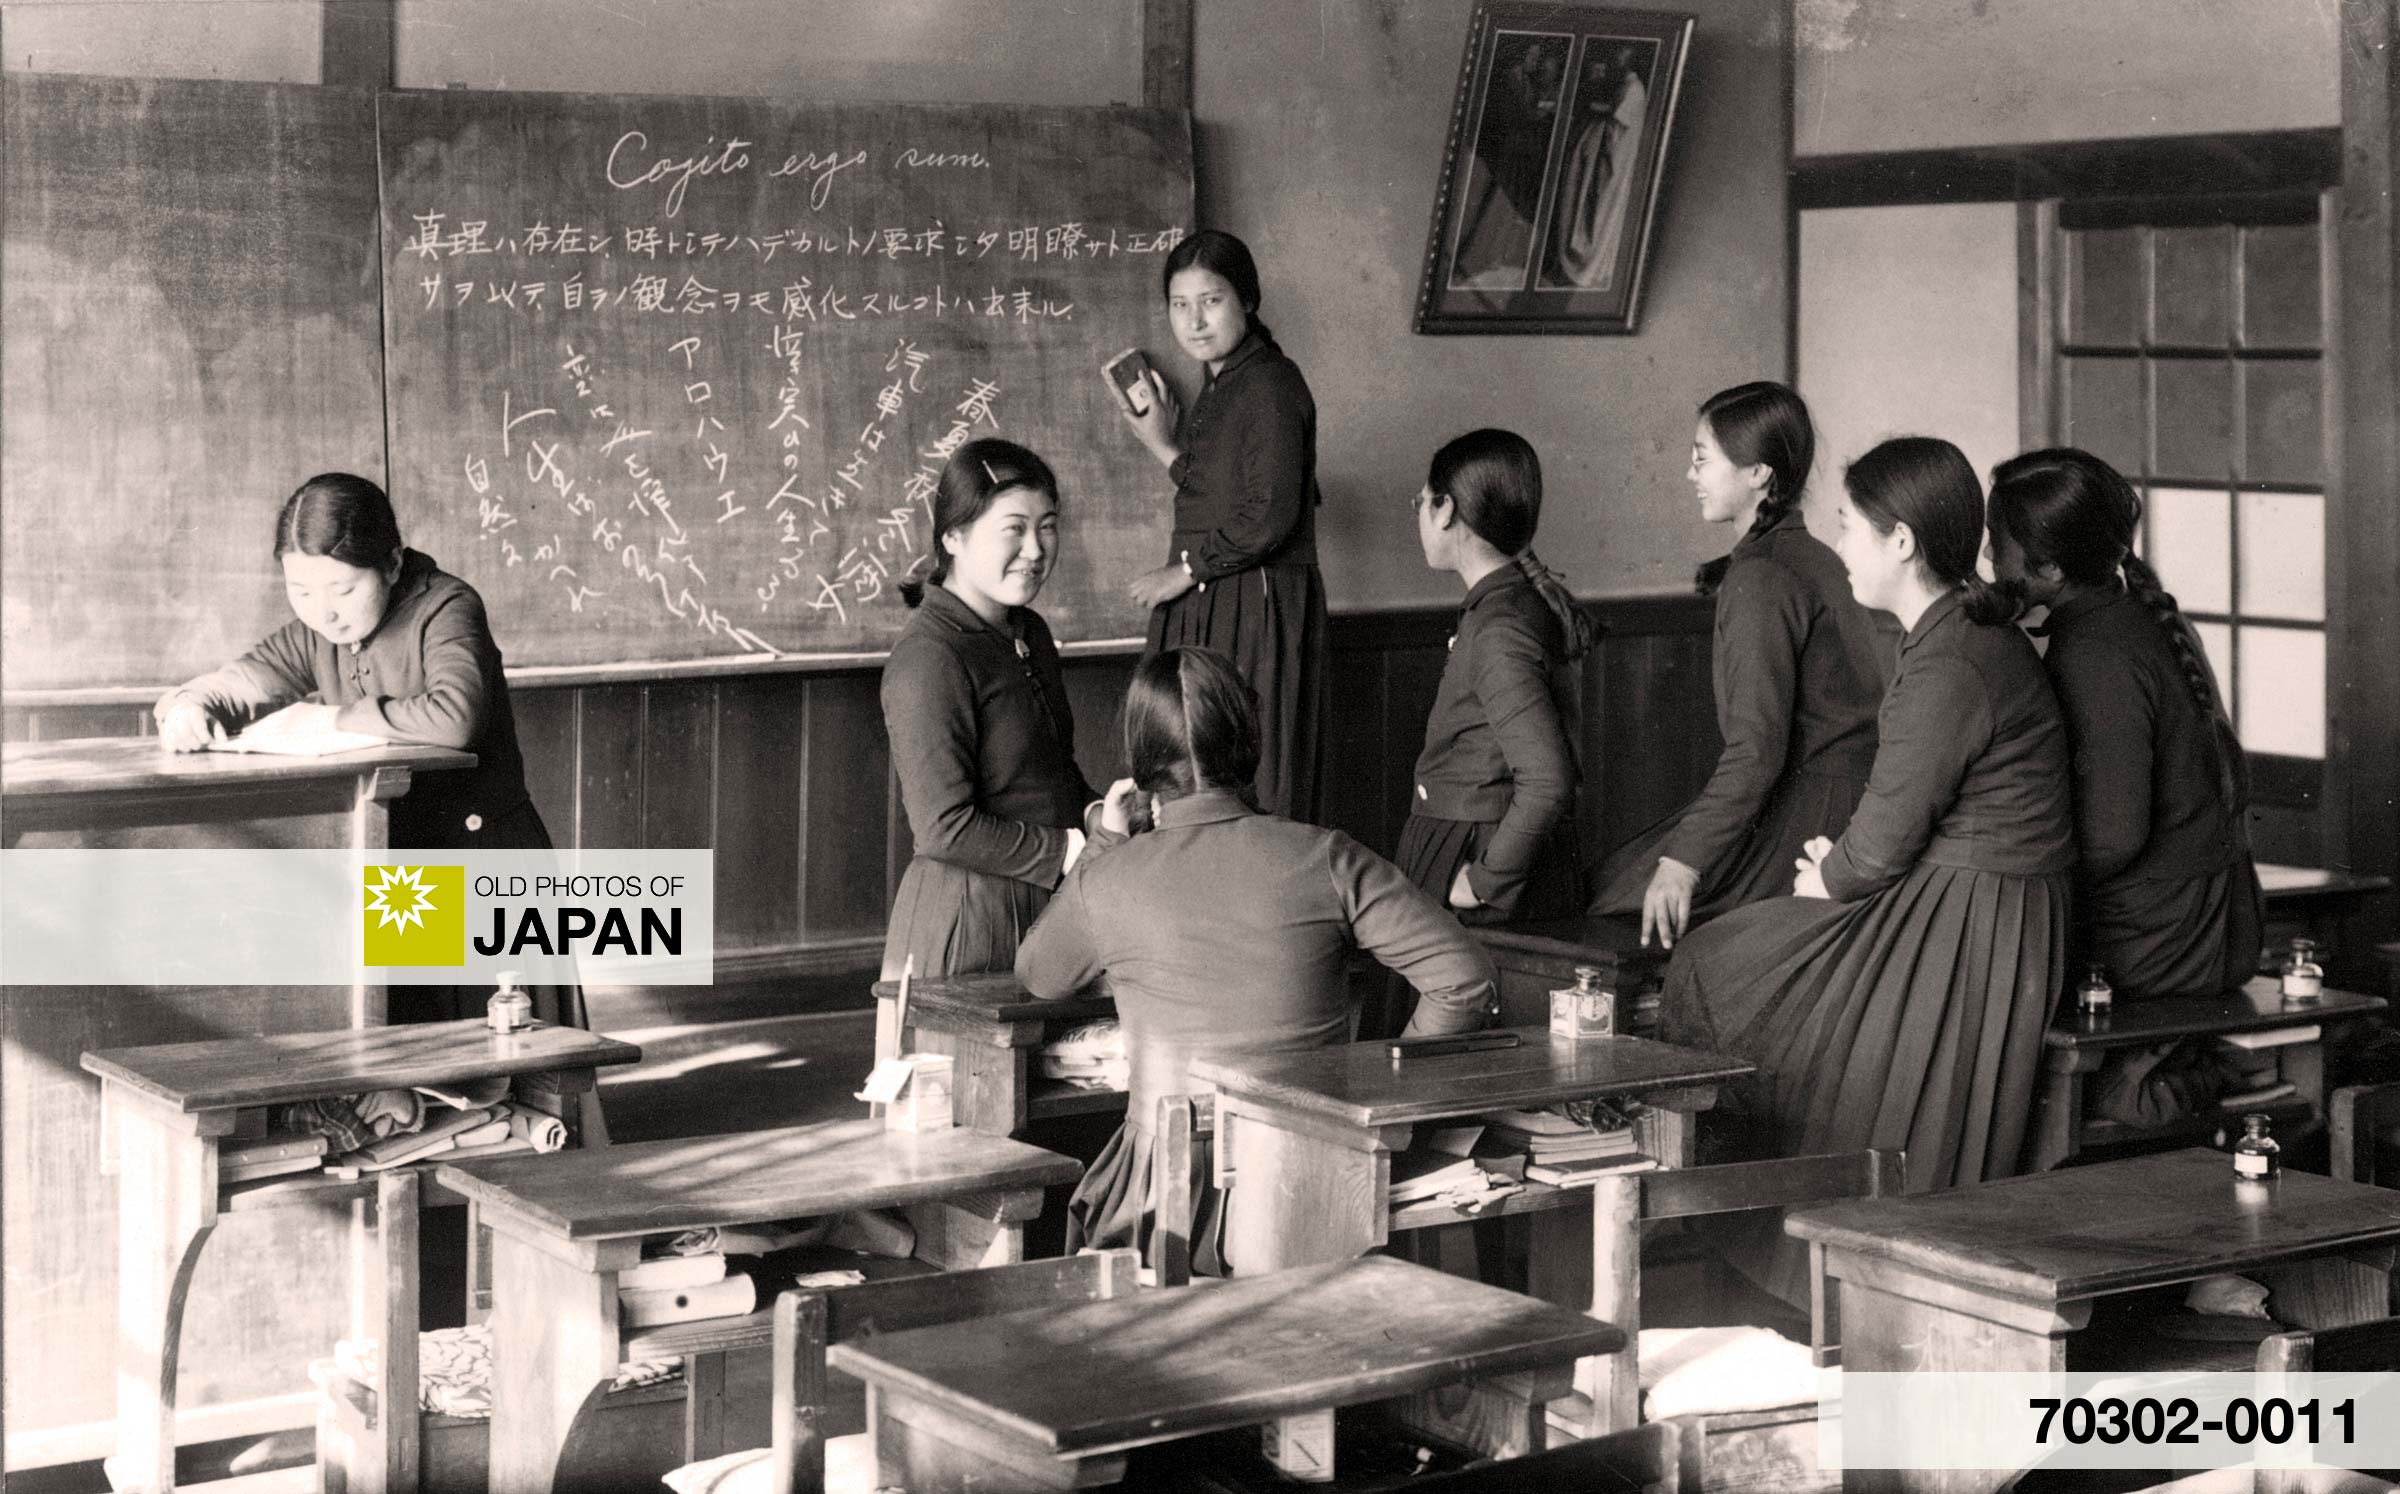 Japanese School Girls in a Classroom